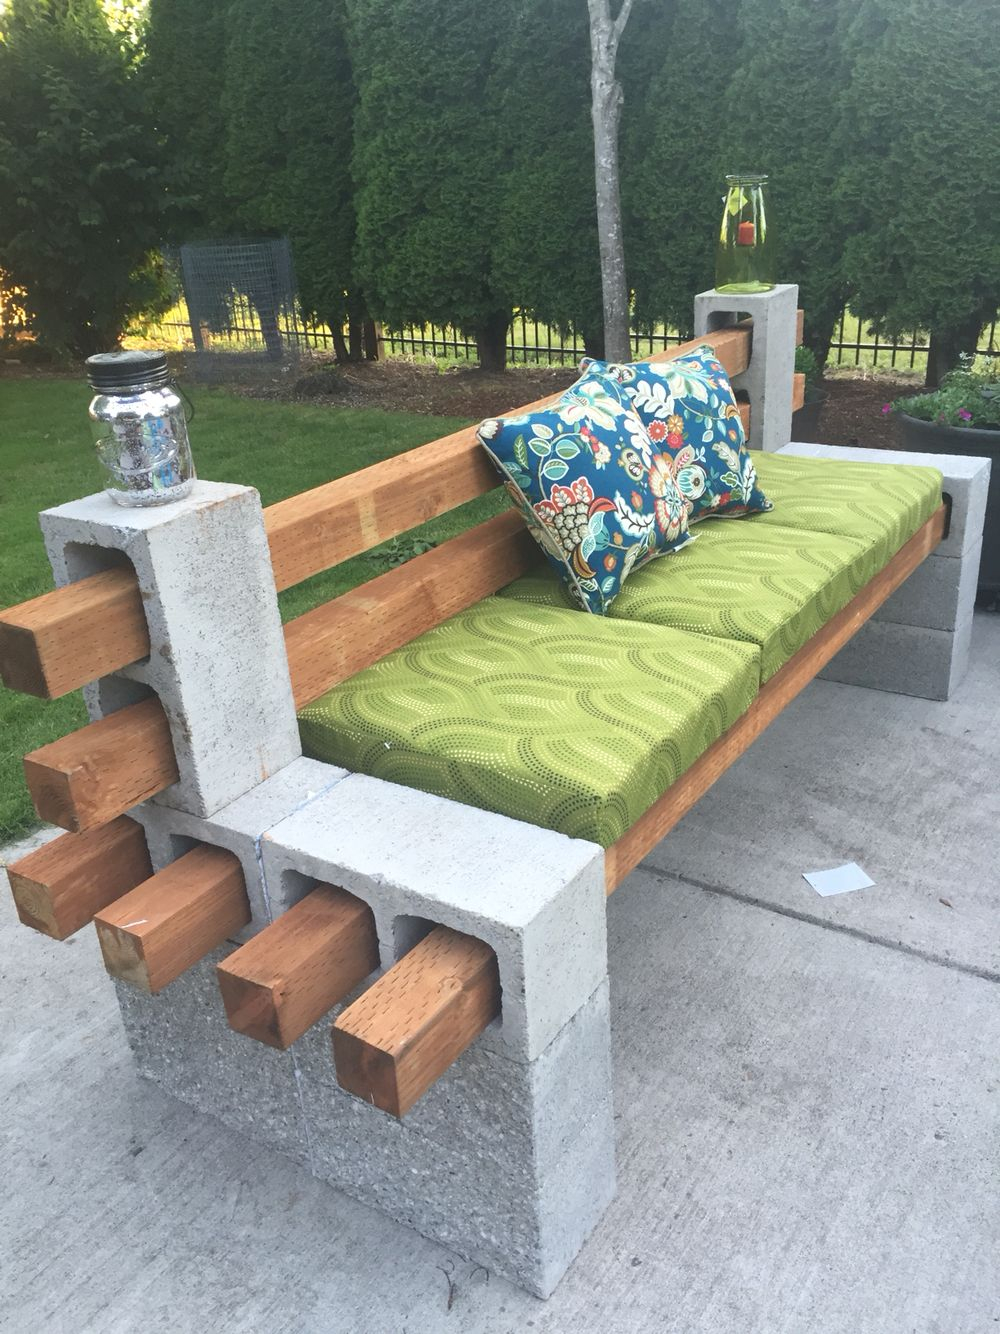 13 Diy Patio Furniture Ideas That Are Simple And Cheap Page 2 Of with 14 Clever Initiatives of How to Makeover Backyard Patio Ideas Cheap